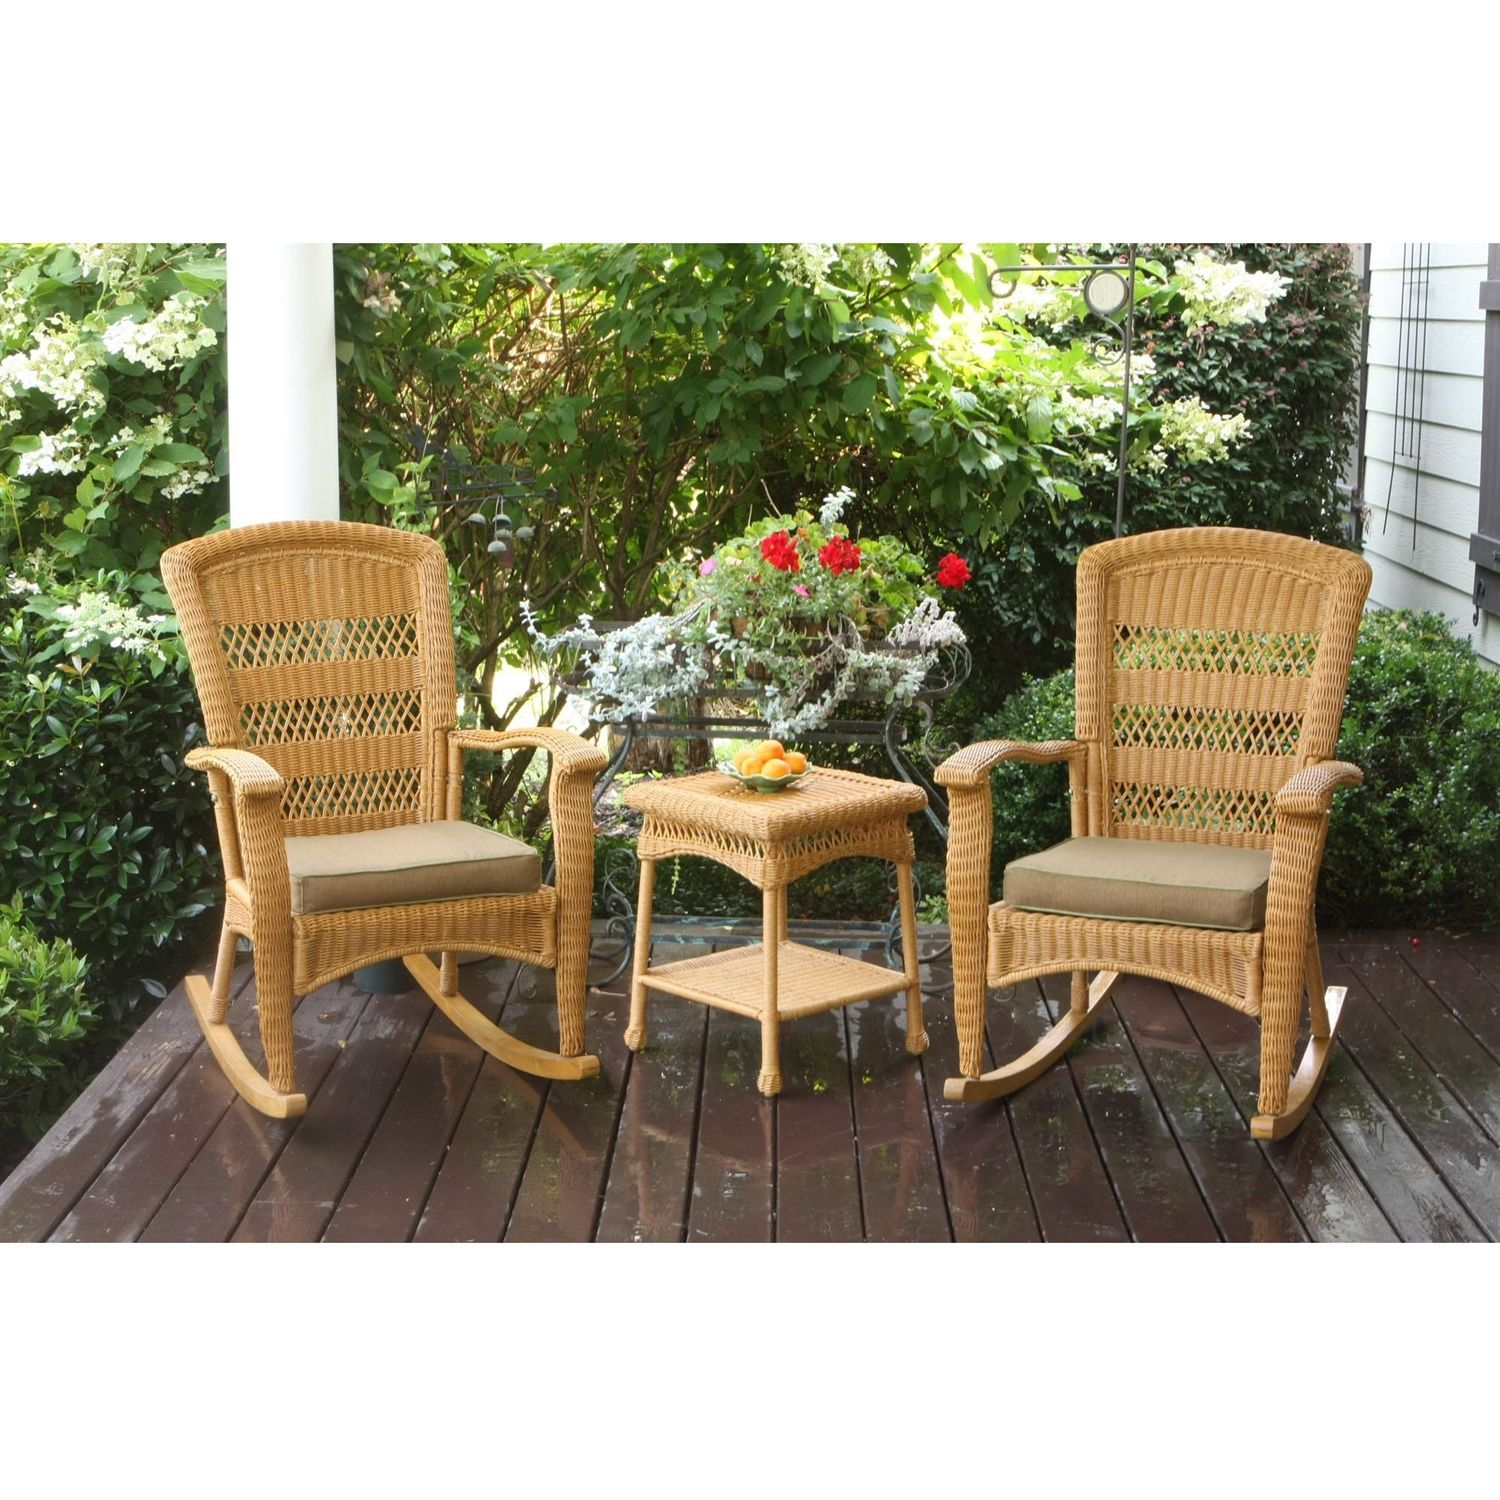 Tortuga 3PC Outdoor Porch Rocker Set 2 Amber Resin Wicker Rocking Chairs Table